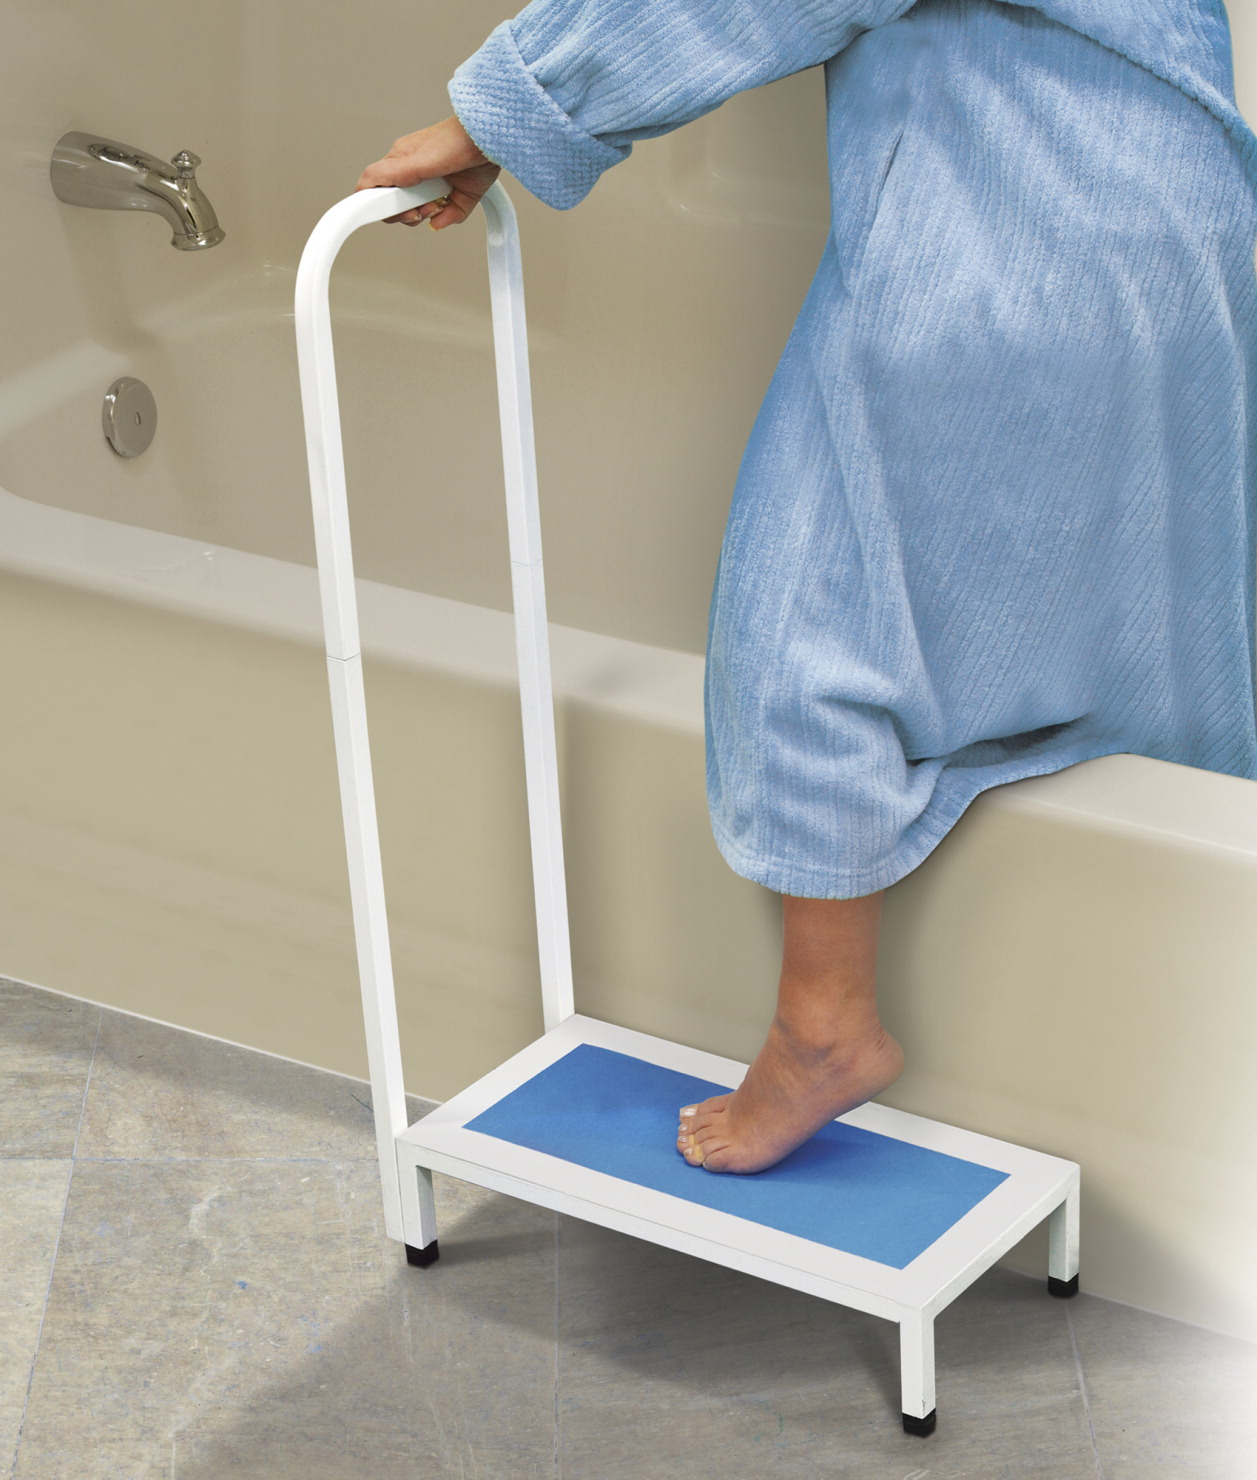 North American Health & Wellness Bath Step With Handle